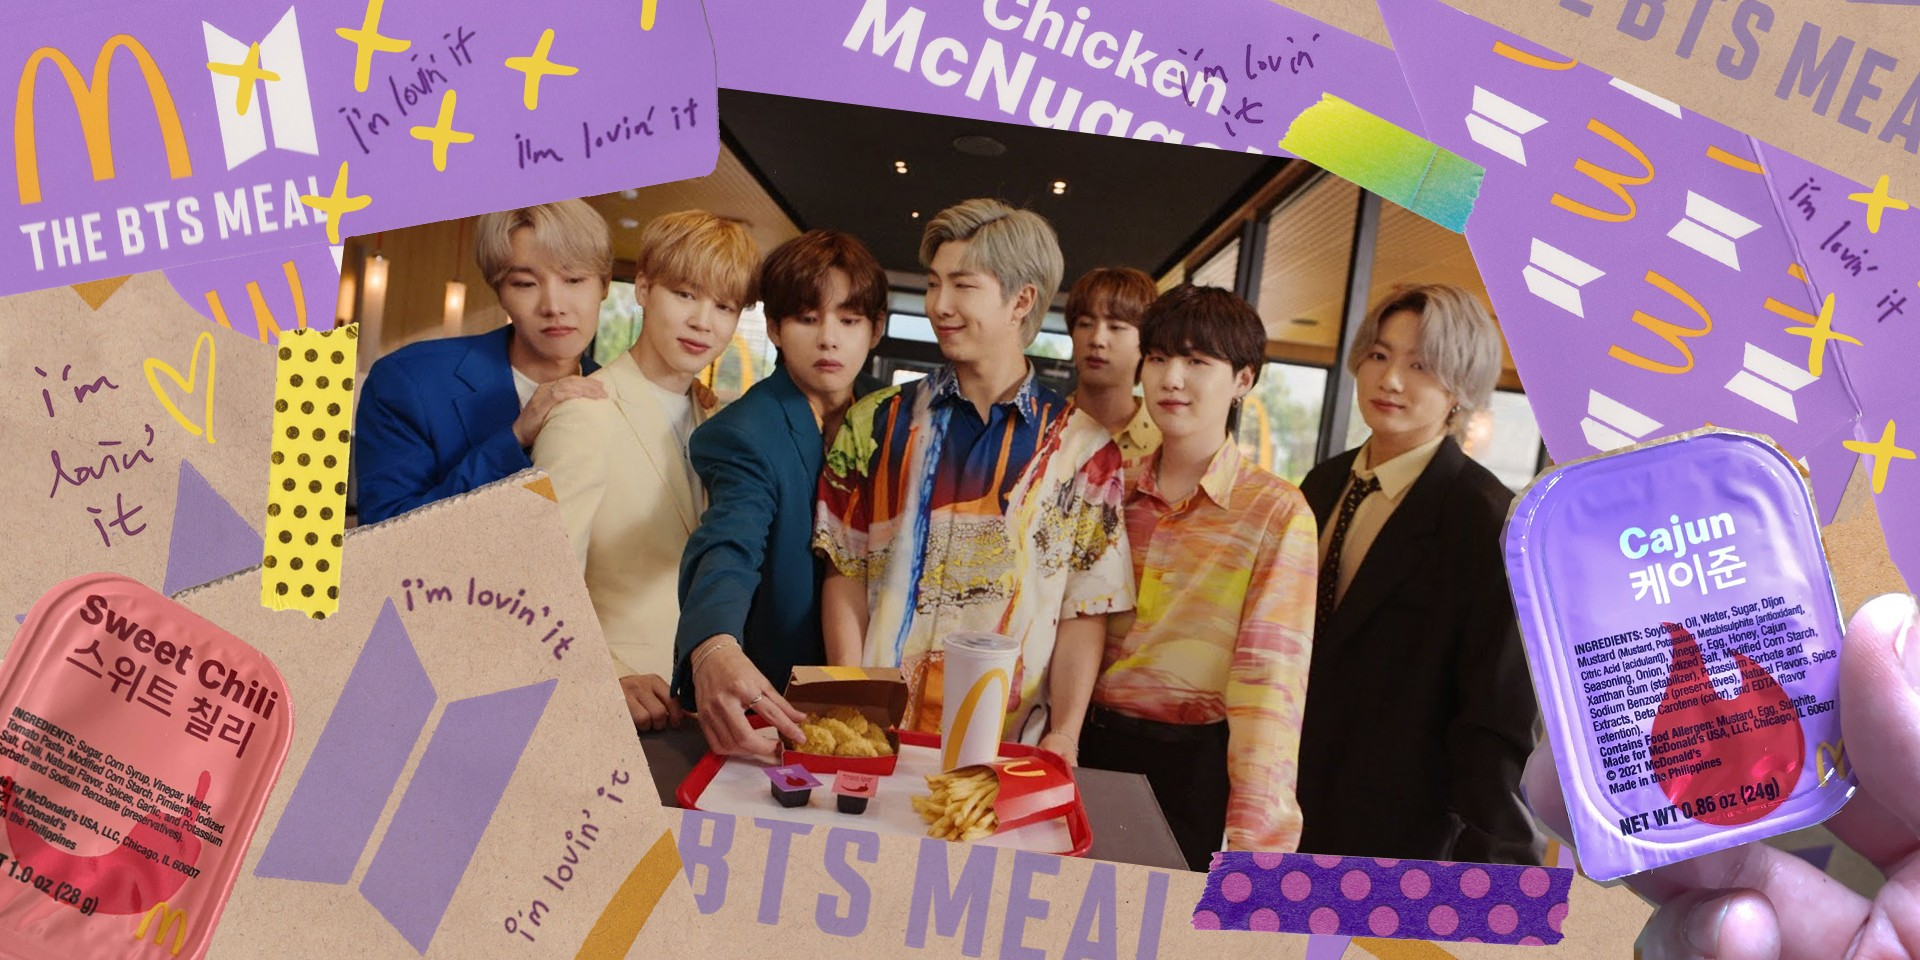 Filipino fans share their BTS Meal experience, sauce bias, and more